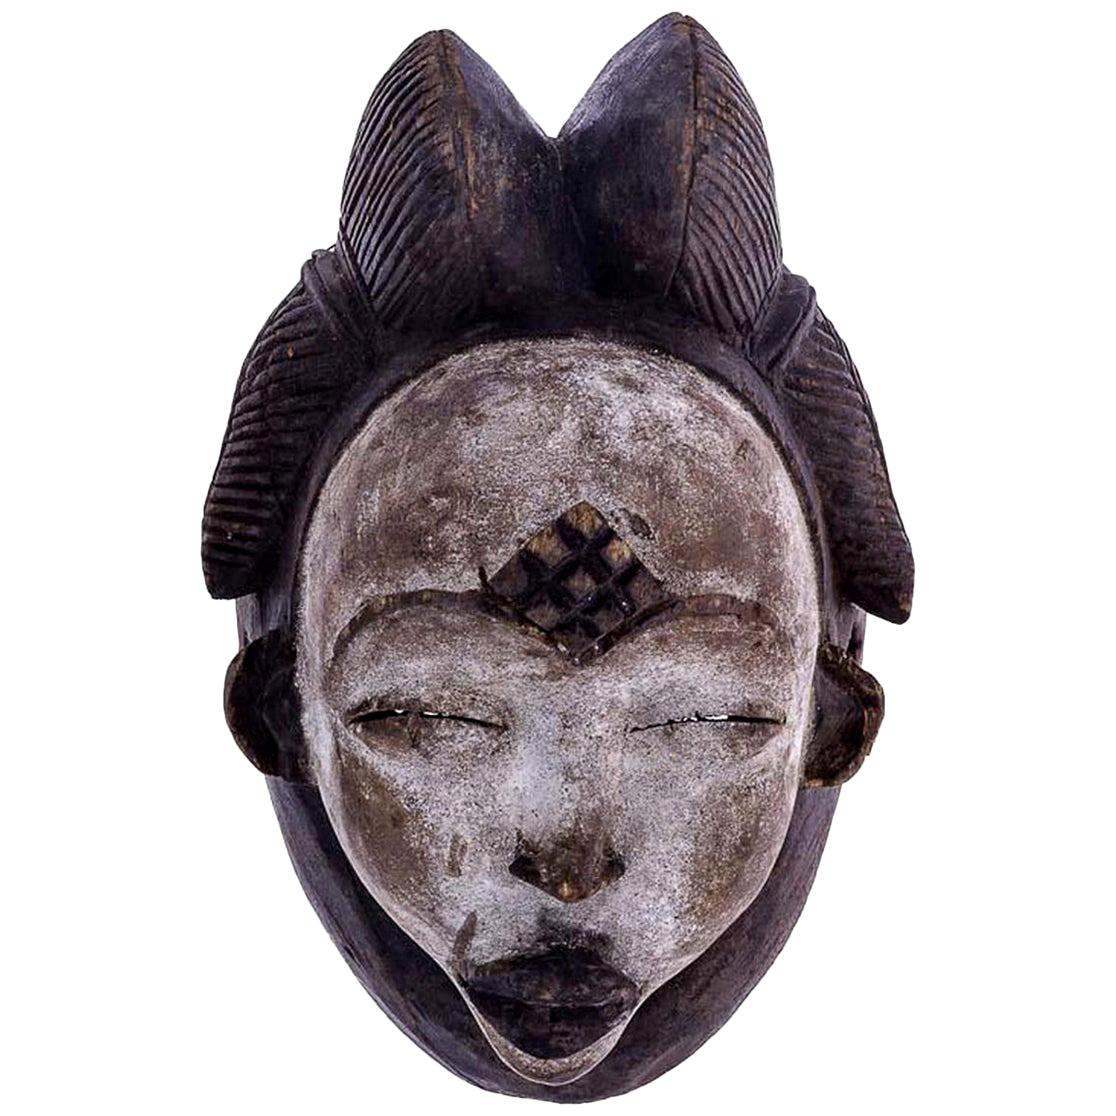 Punu African Tribal Face Mask Sculpture, Figure from Gabon, 20th Century